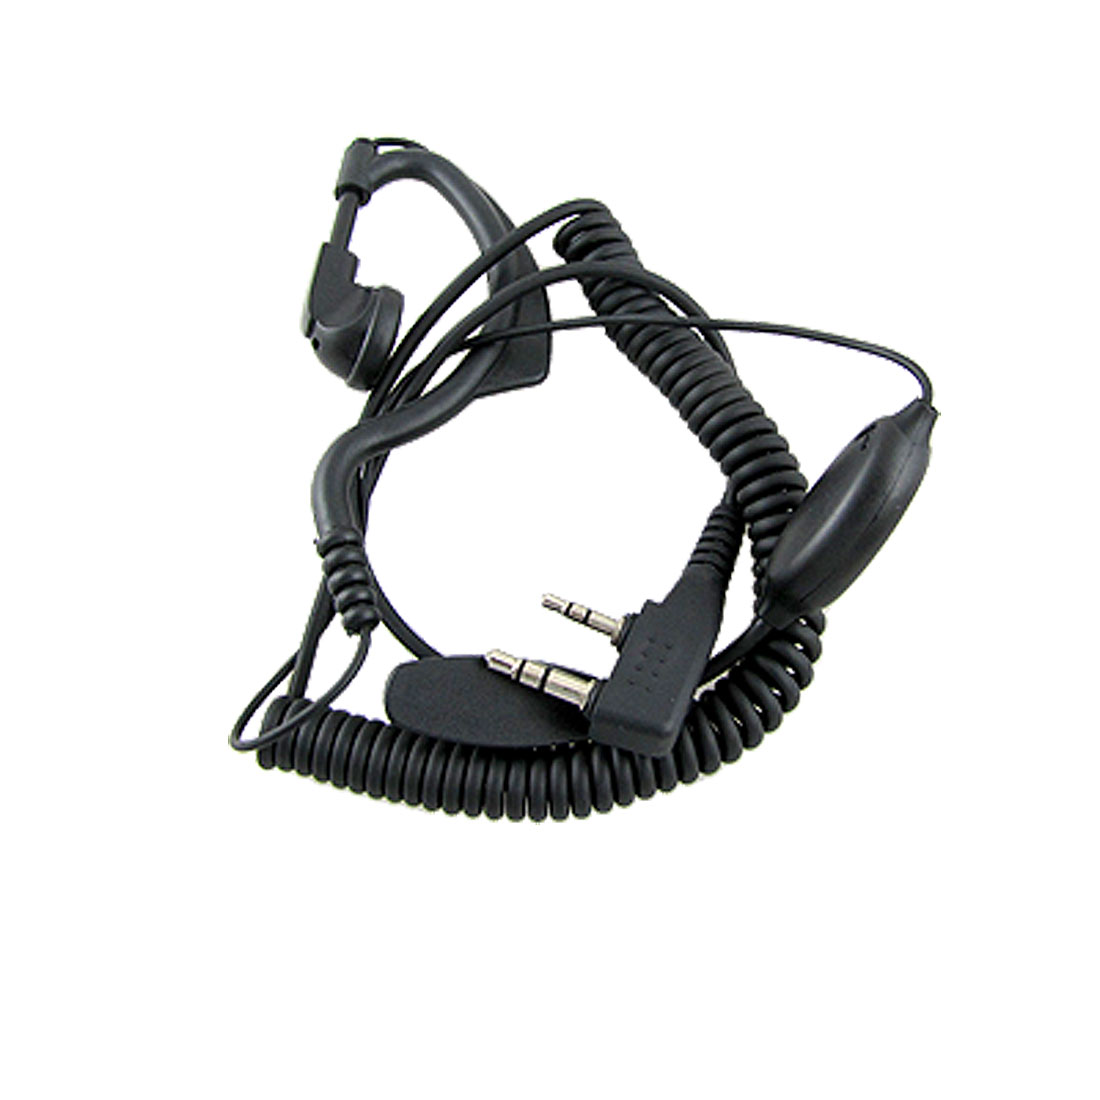 Ear Hanger 2 Terminals Mic Earphone Headset Black for Kenwood TK Series